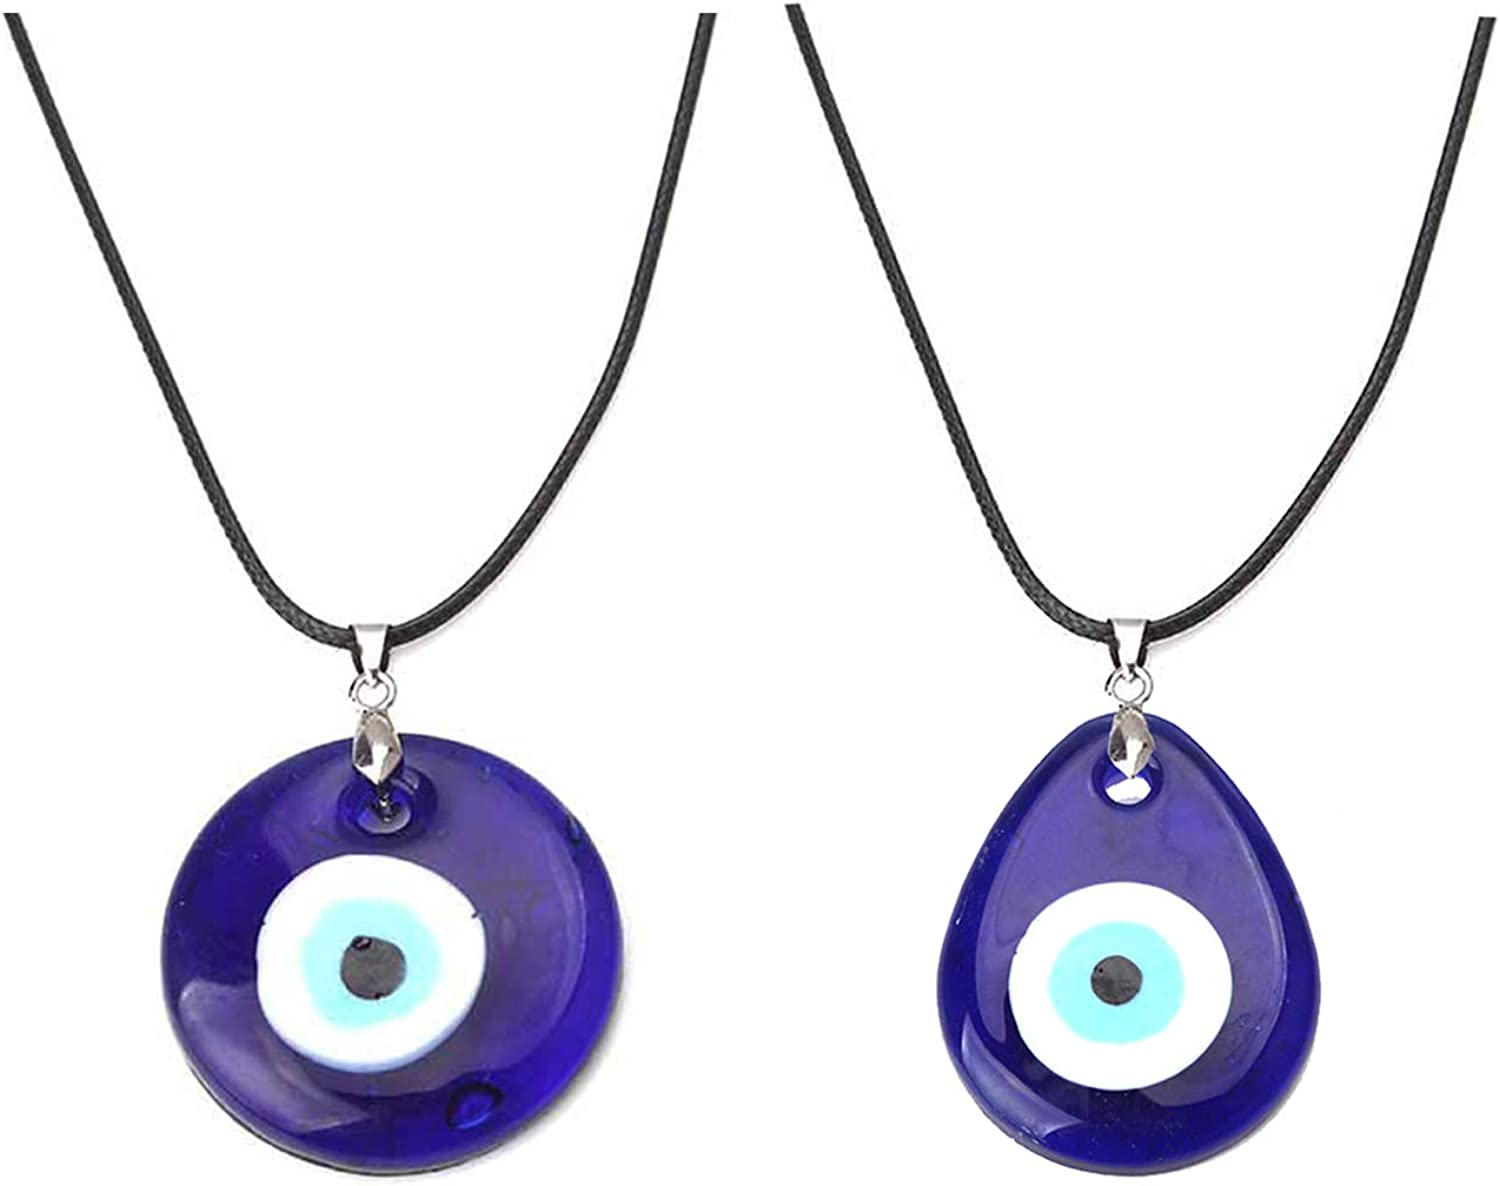 Caiyao Evil Eye Pendant Necklace Glass Leather Rope Chain Turkish Protact Lucky Necklace for Women Men